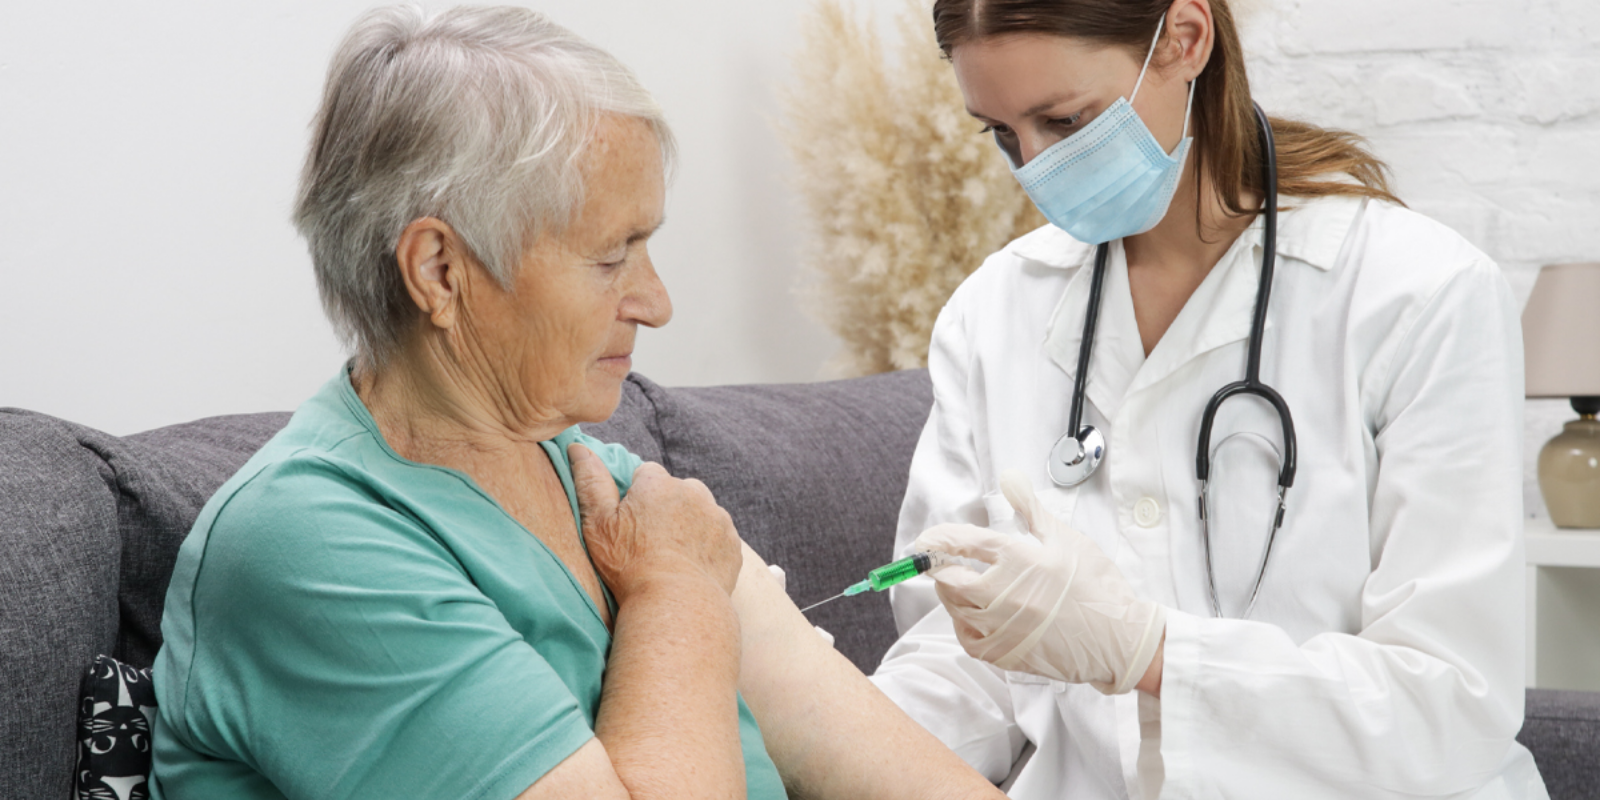 Vaccinated Canadians feel they deserve more freedoms than unvaccinated Canadians: Poll